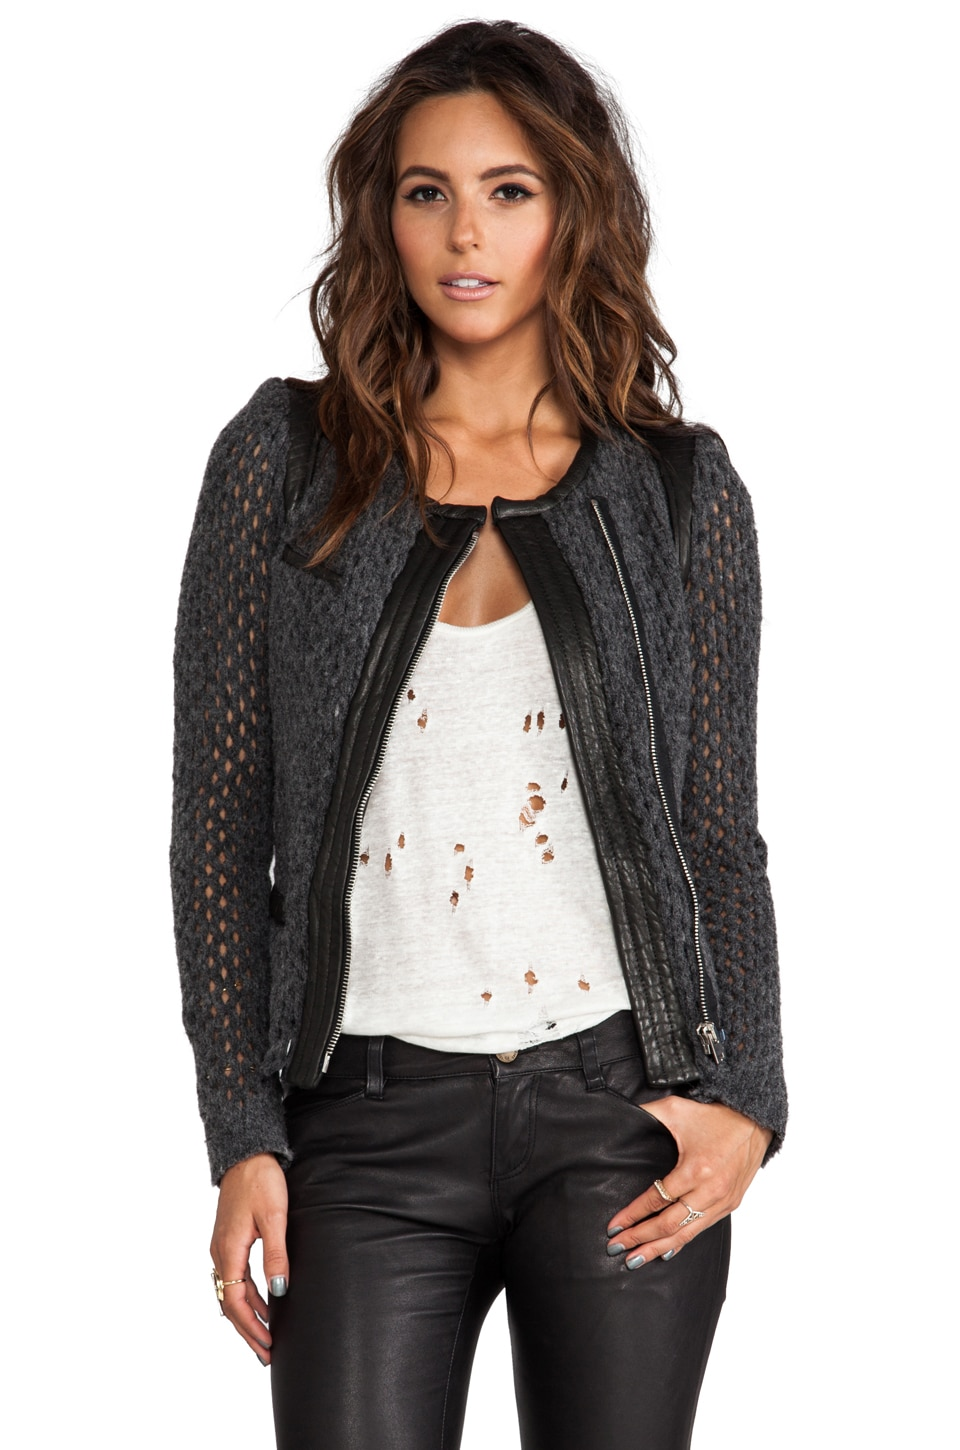 IRO Lina Jacket in Anthracite